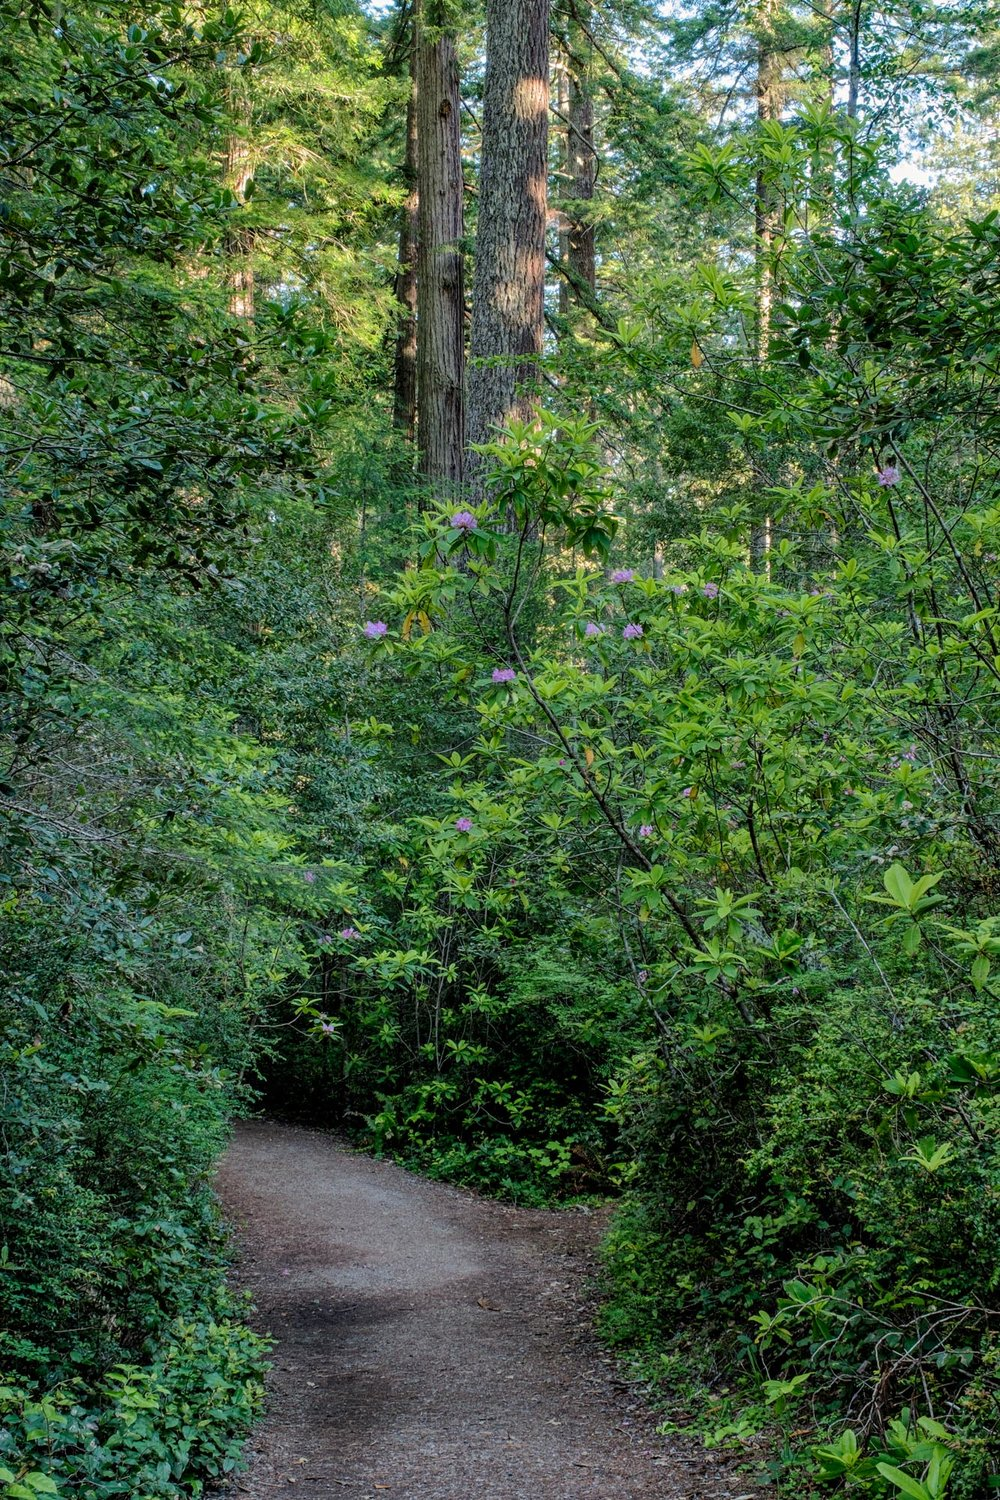 The Ladybird Johnson Grove is where the park was designated as a national park by Lyndon B. Johnson.